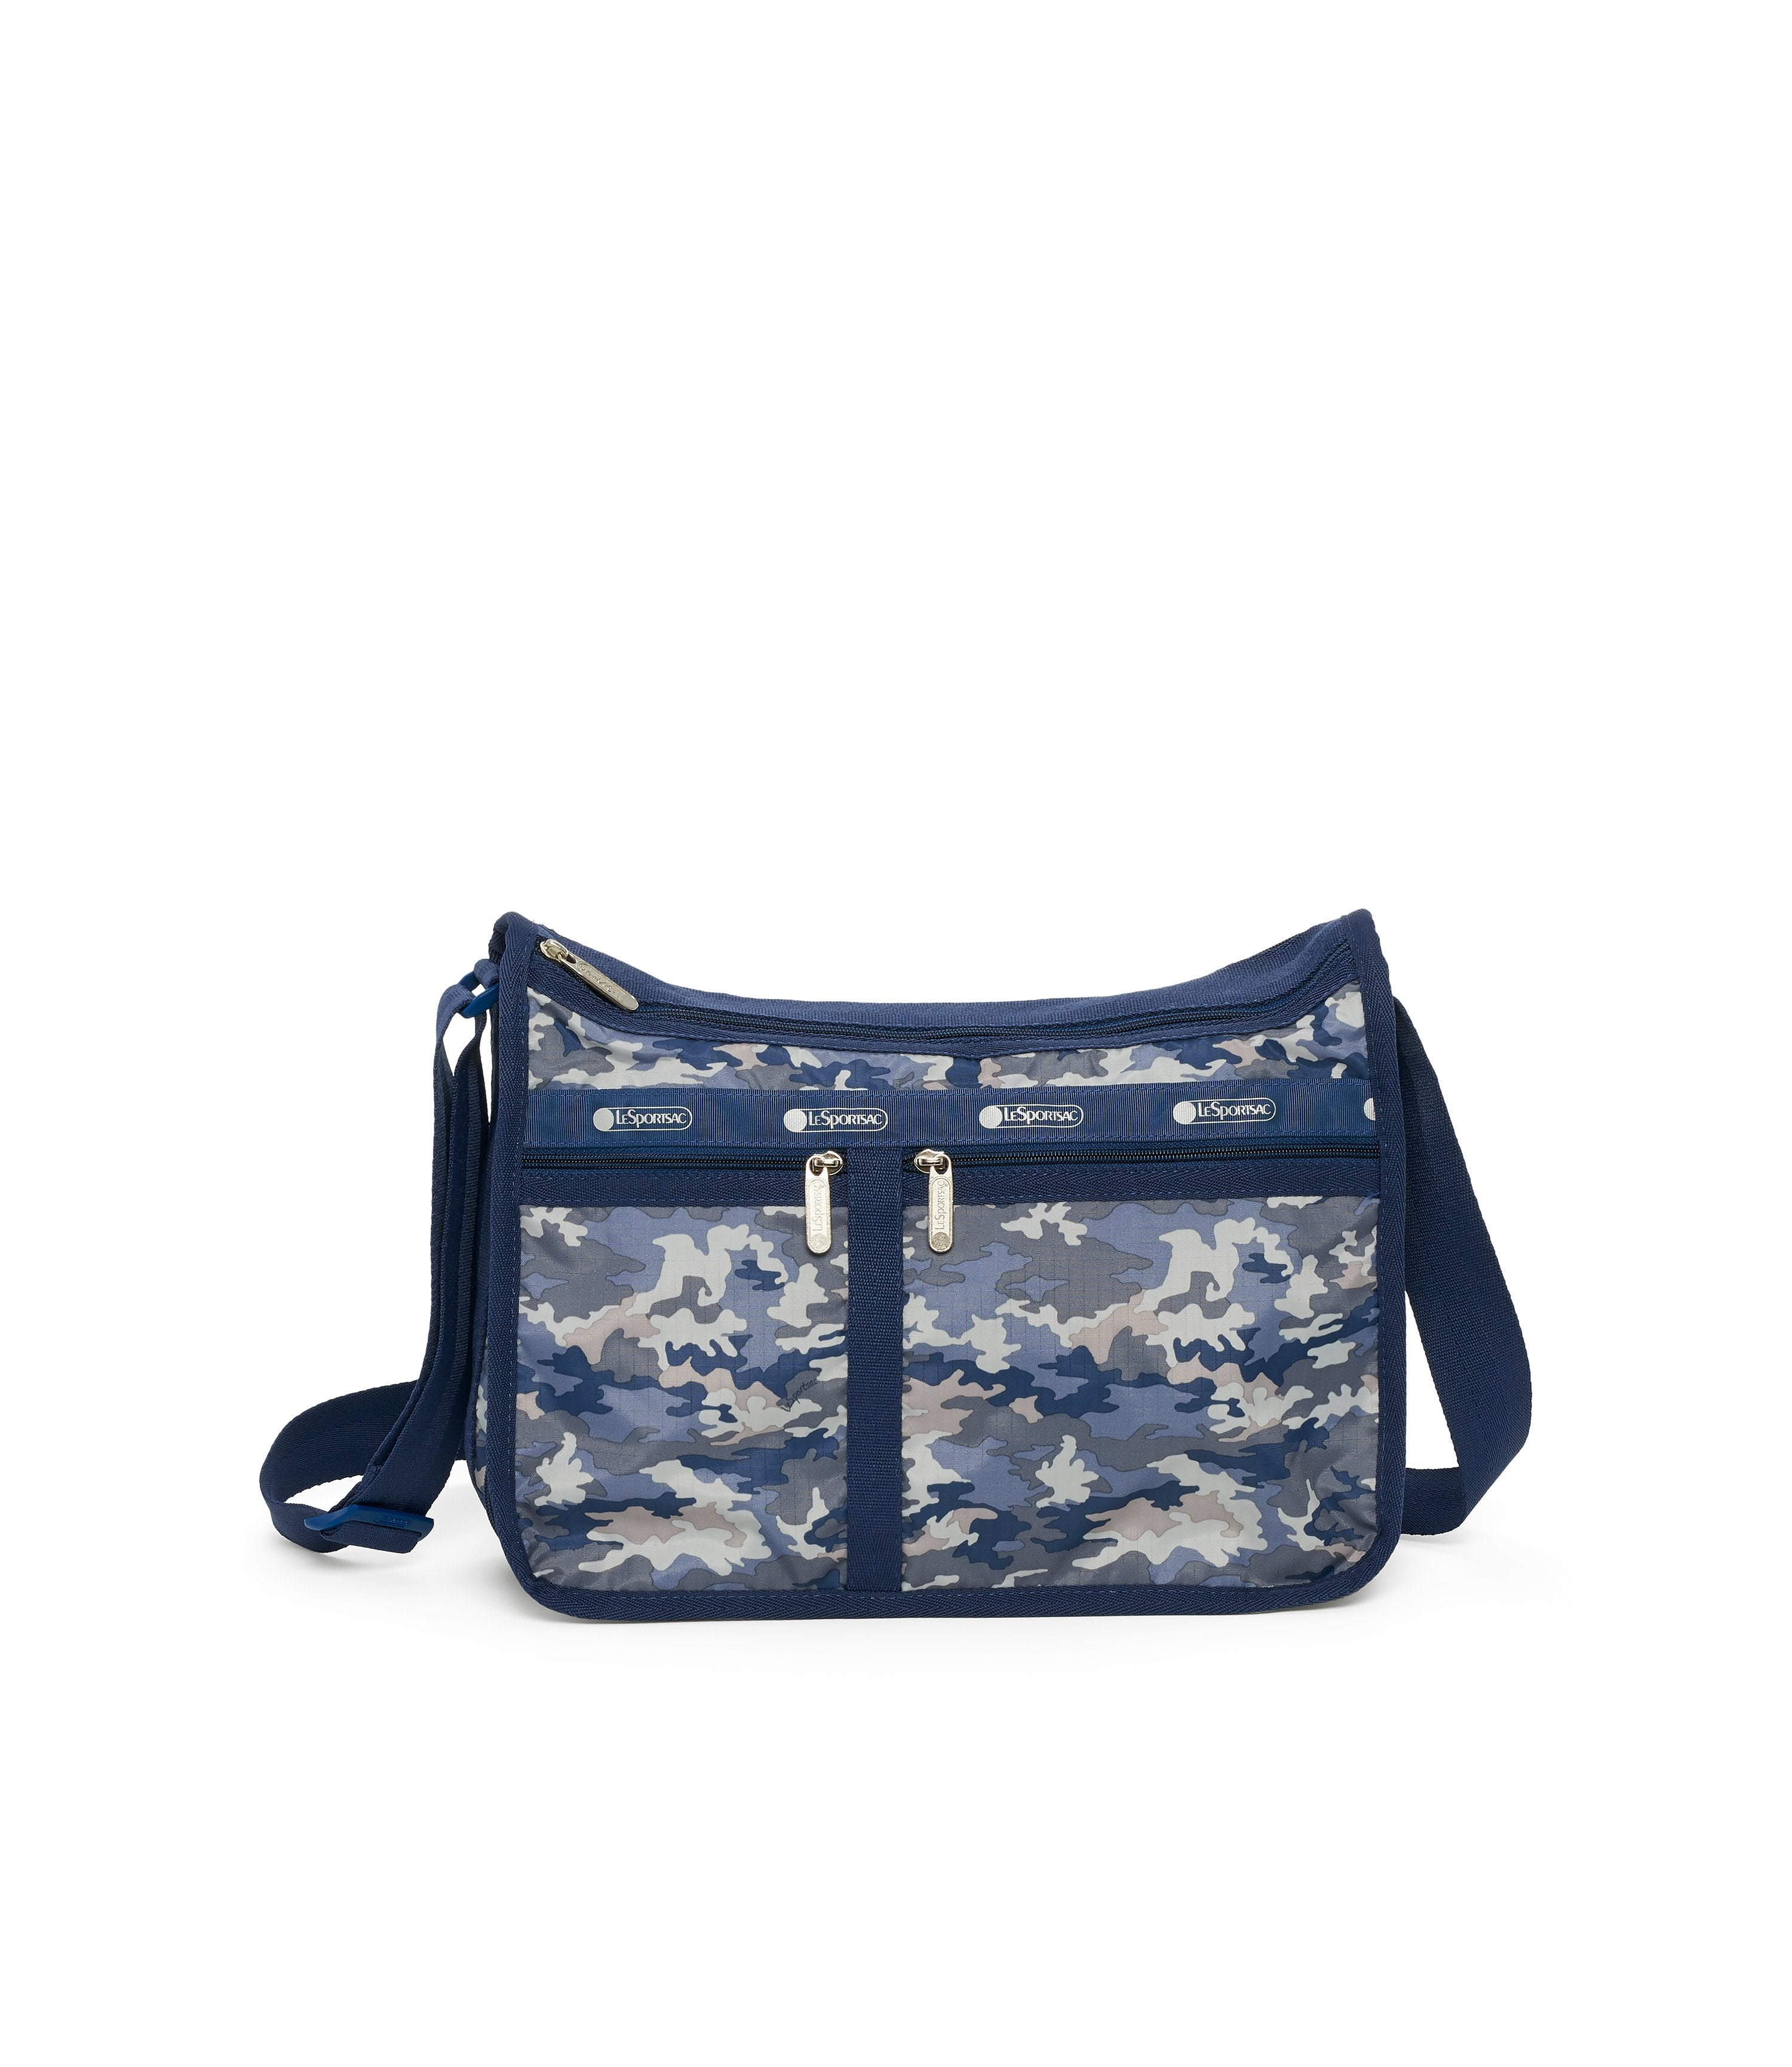 Deluxe Everyday Bag, Nylon Handbags and Classic Purses, Expandable, Crossbody, Camo Blues print